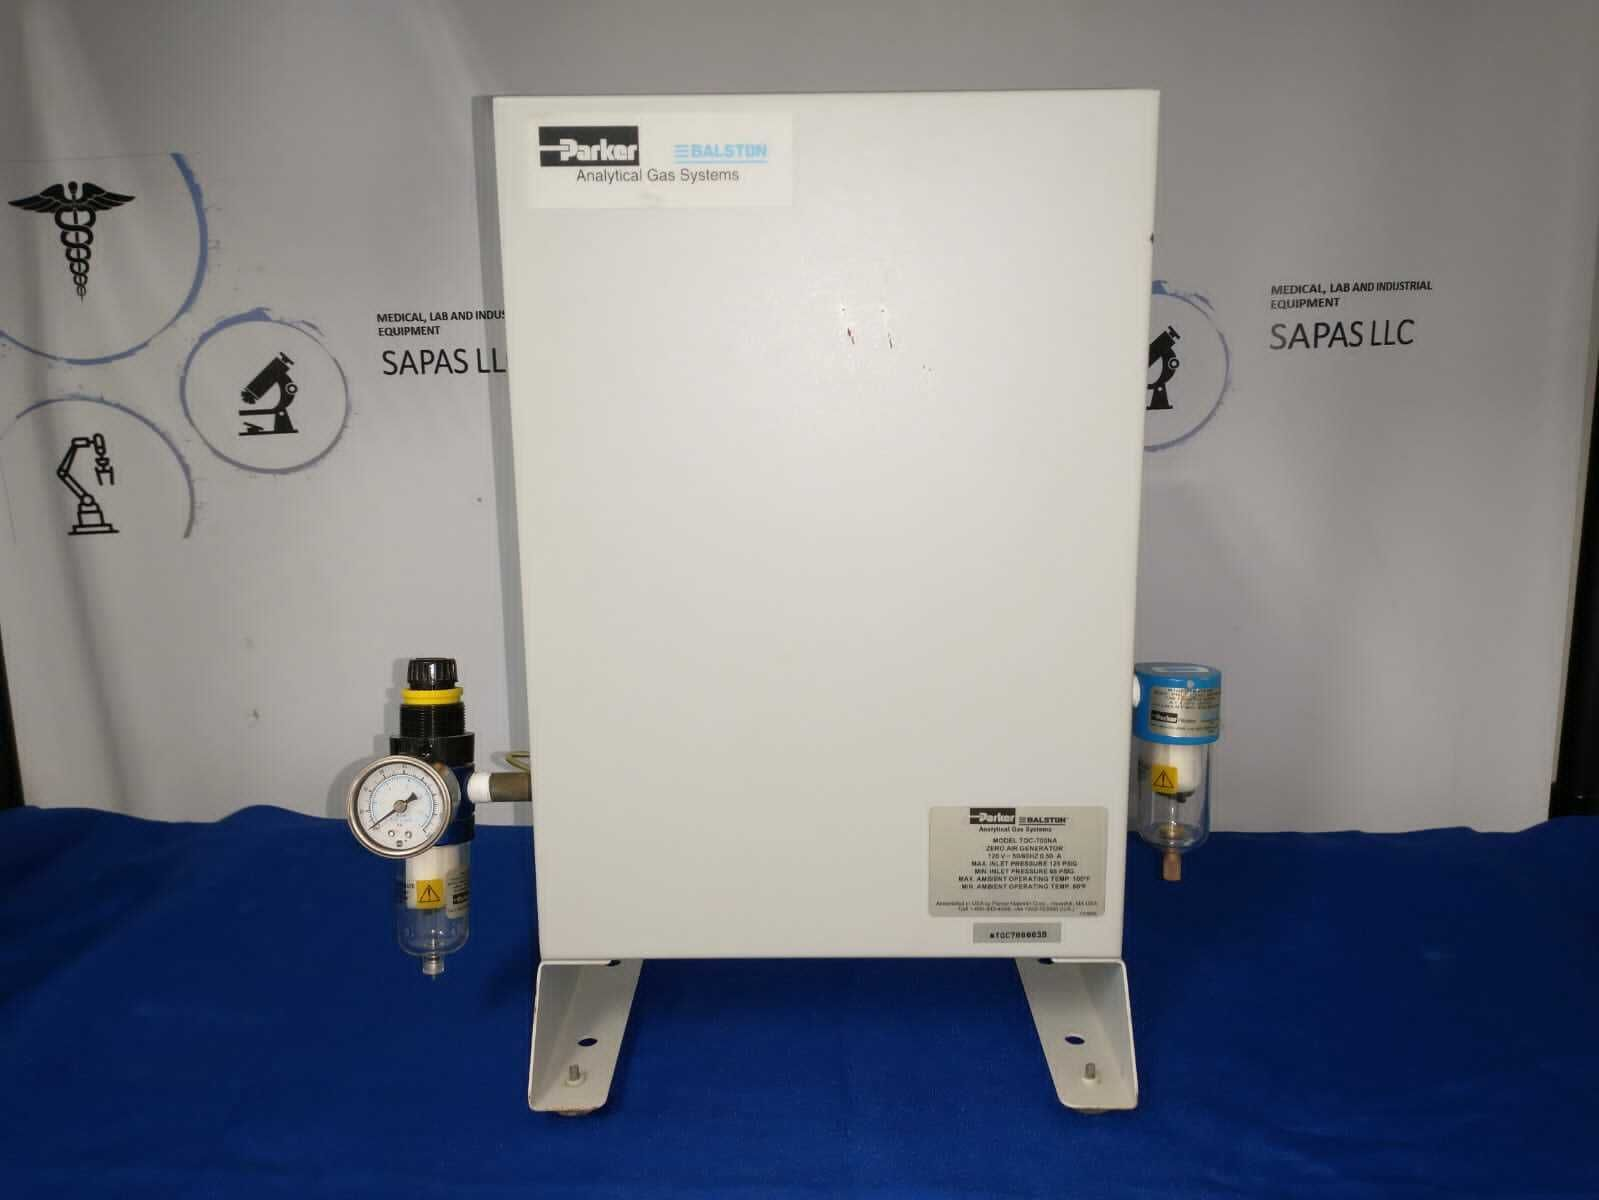 Parker Balston Analytical Gas System Zero Air Generation TOC-700NA